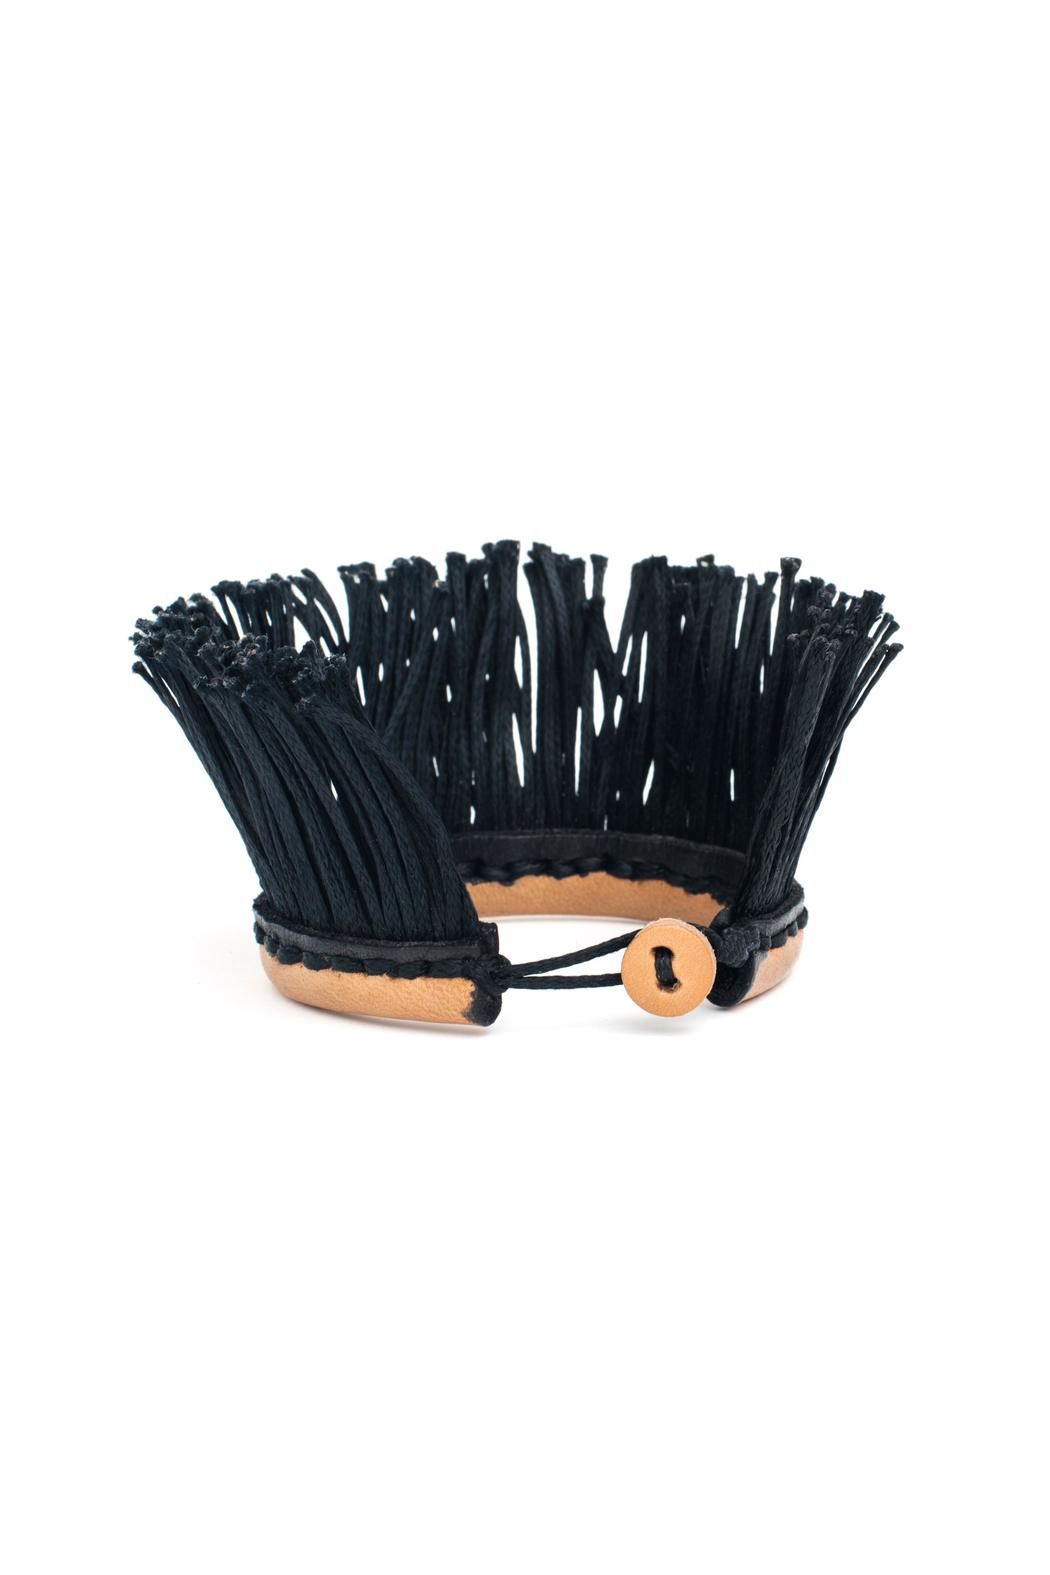 MEIRAV OHAYON Leather Fringe Bracelet - Main Image